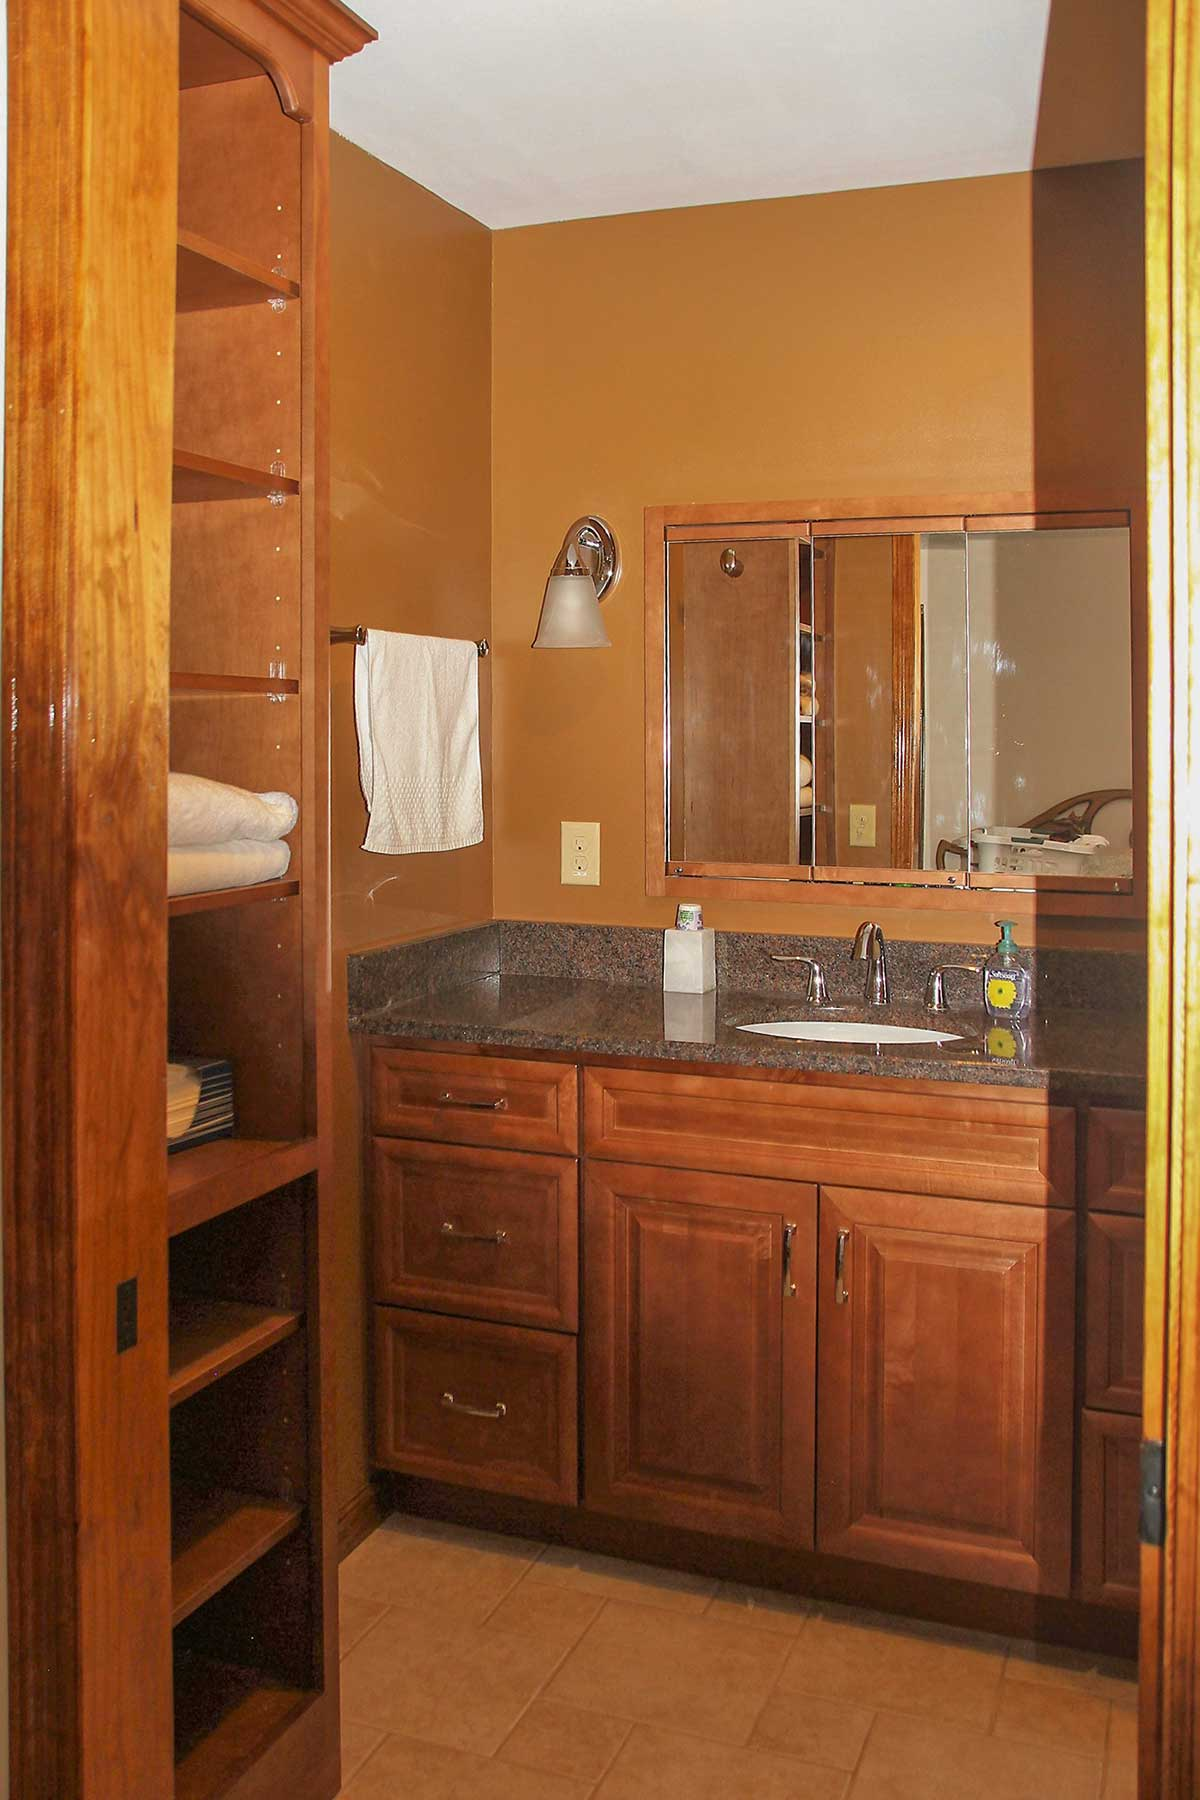 View of bathroom vanity